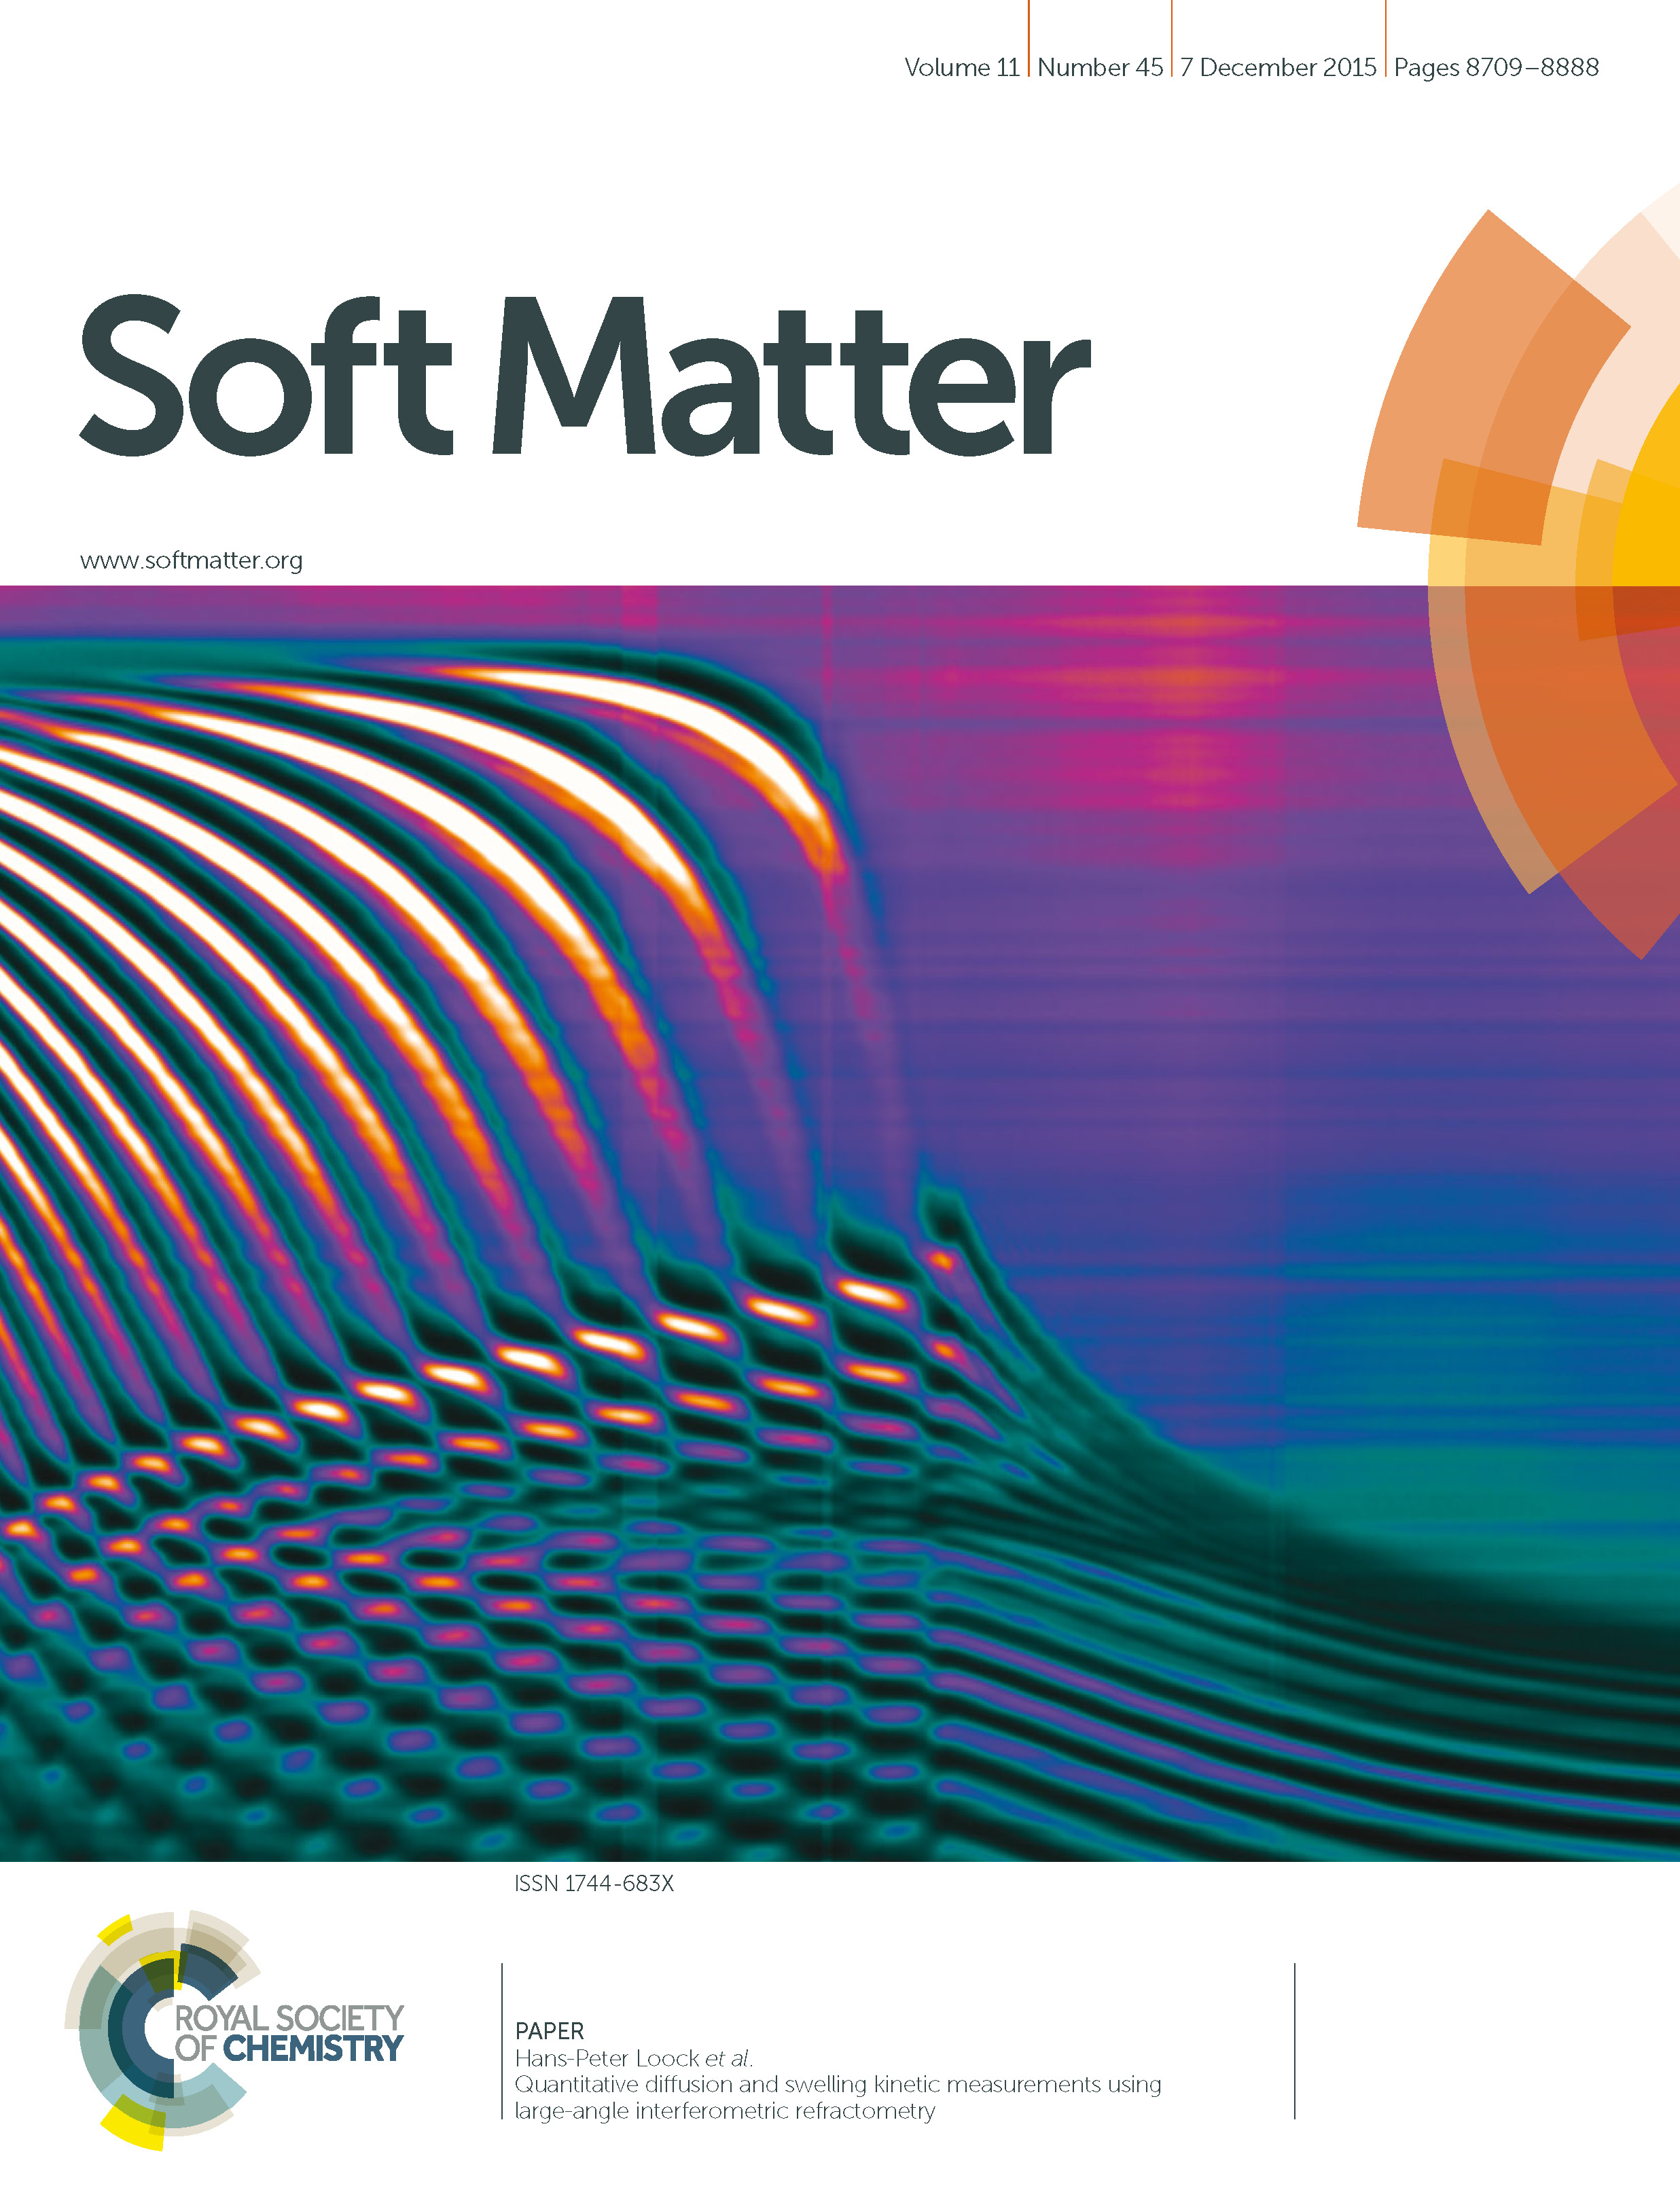 2015 - RSC Soft Matter - Quantitative diffusion and swelling kinetic measurements - cover - Copy.jpg